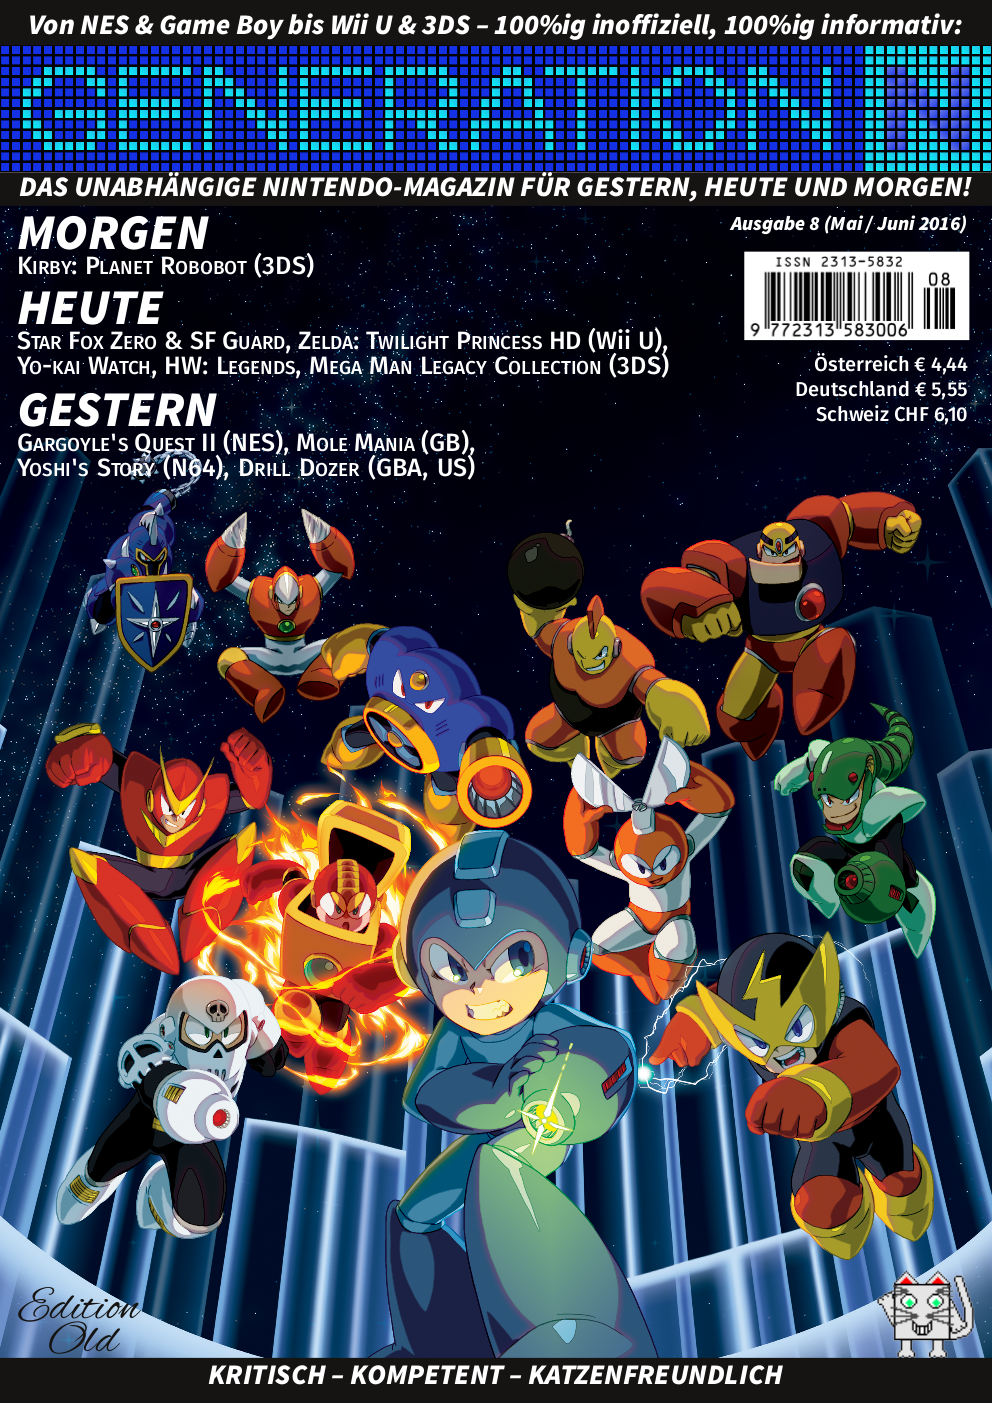 Generation_N_8_Cover_klein